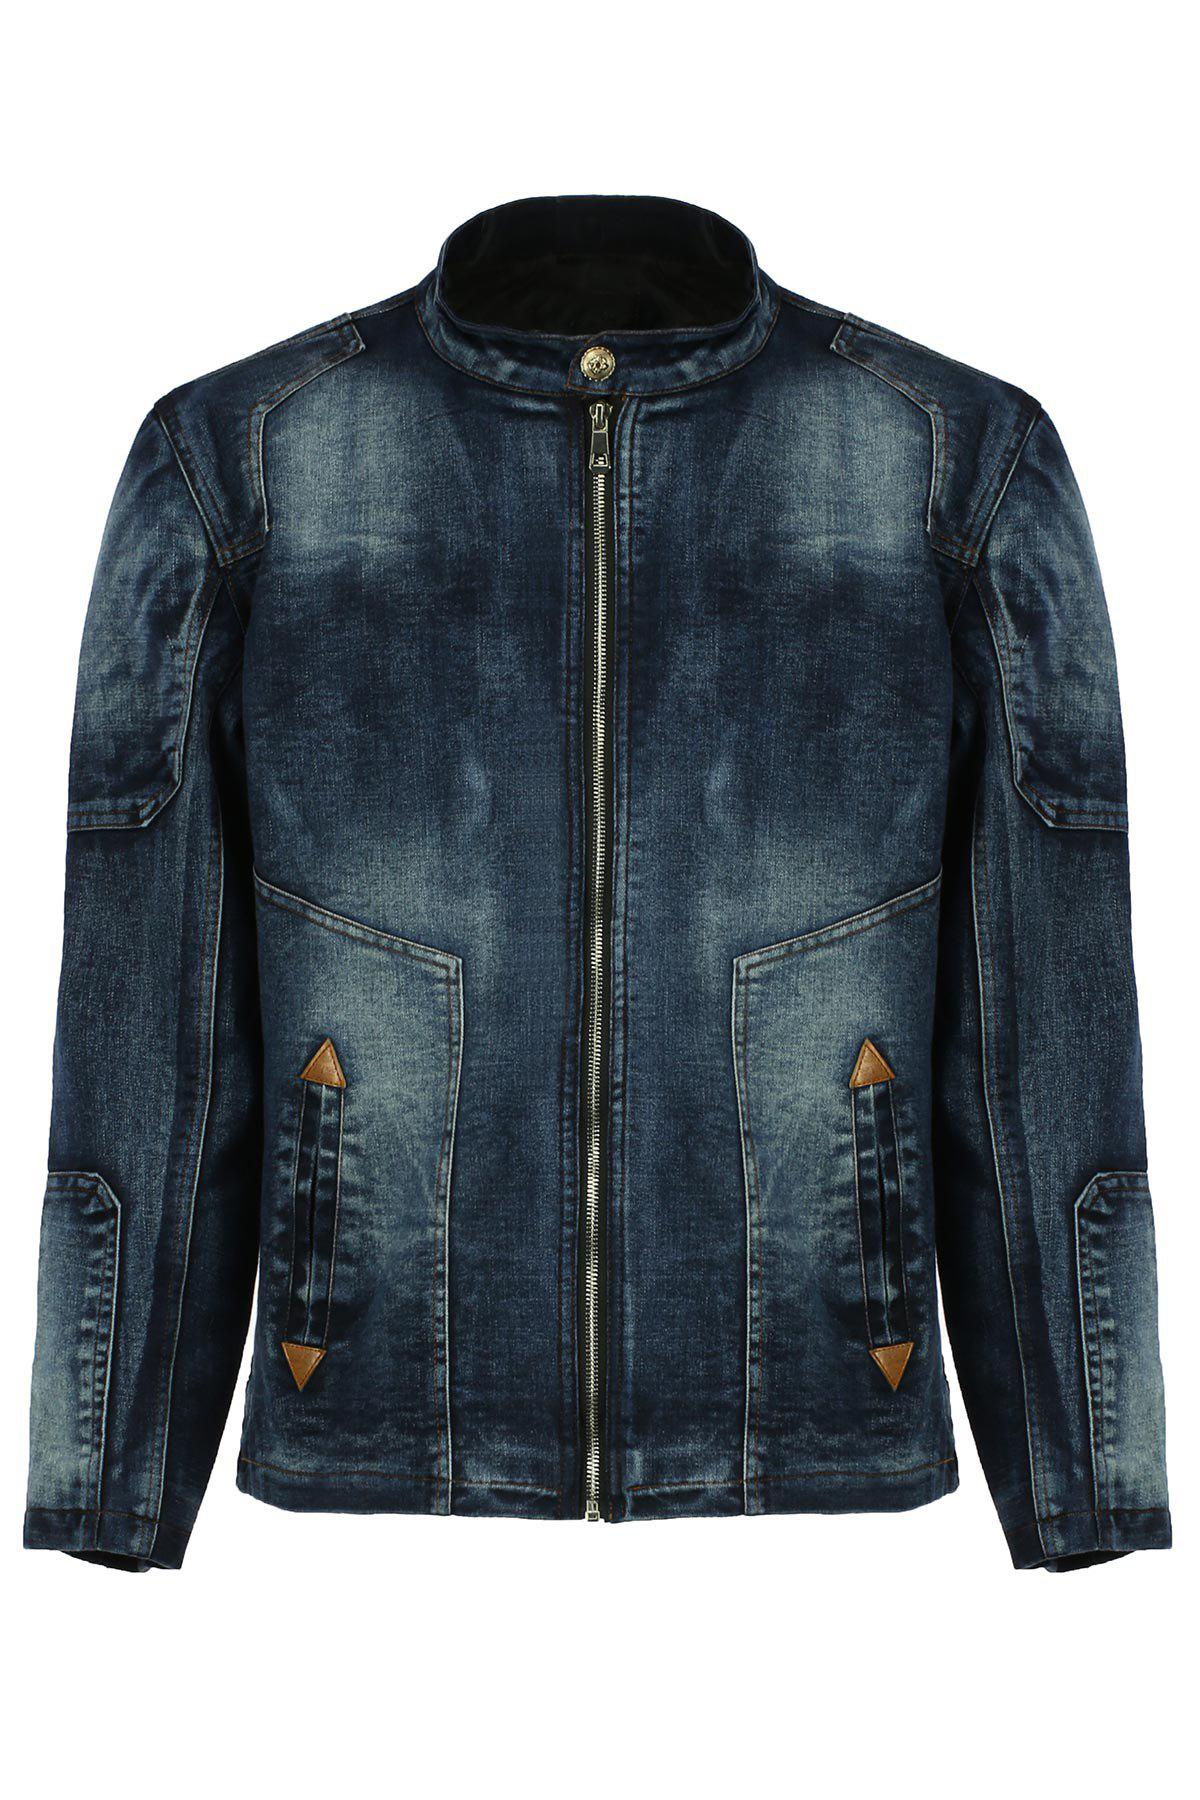 PU Leather Embellished Stand Collar Long Sleeves Men's Ombre Denim Jacket